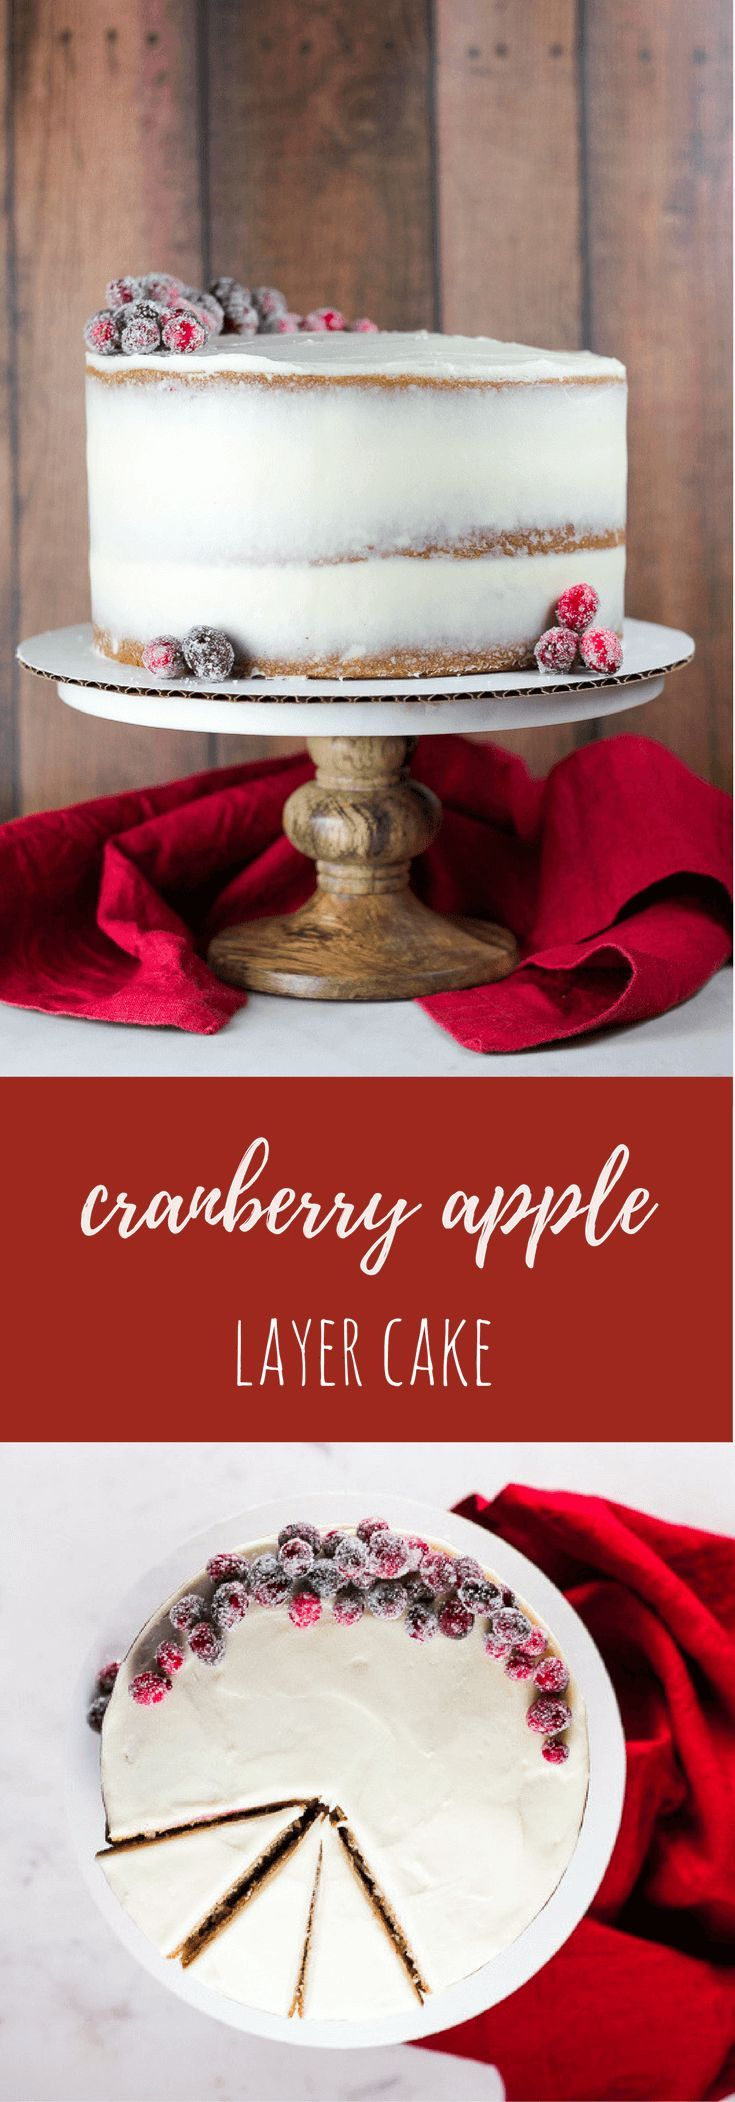 Cranberry Apple Cake with Cream Cheese Frosting